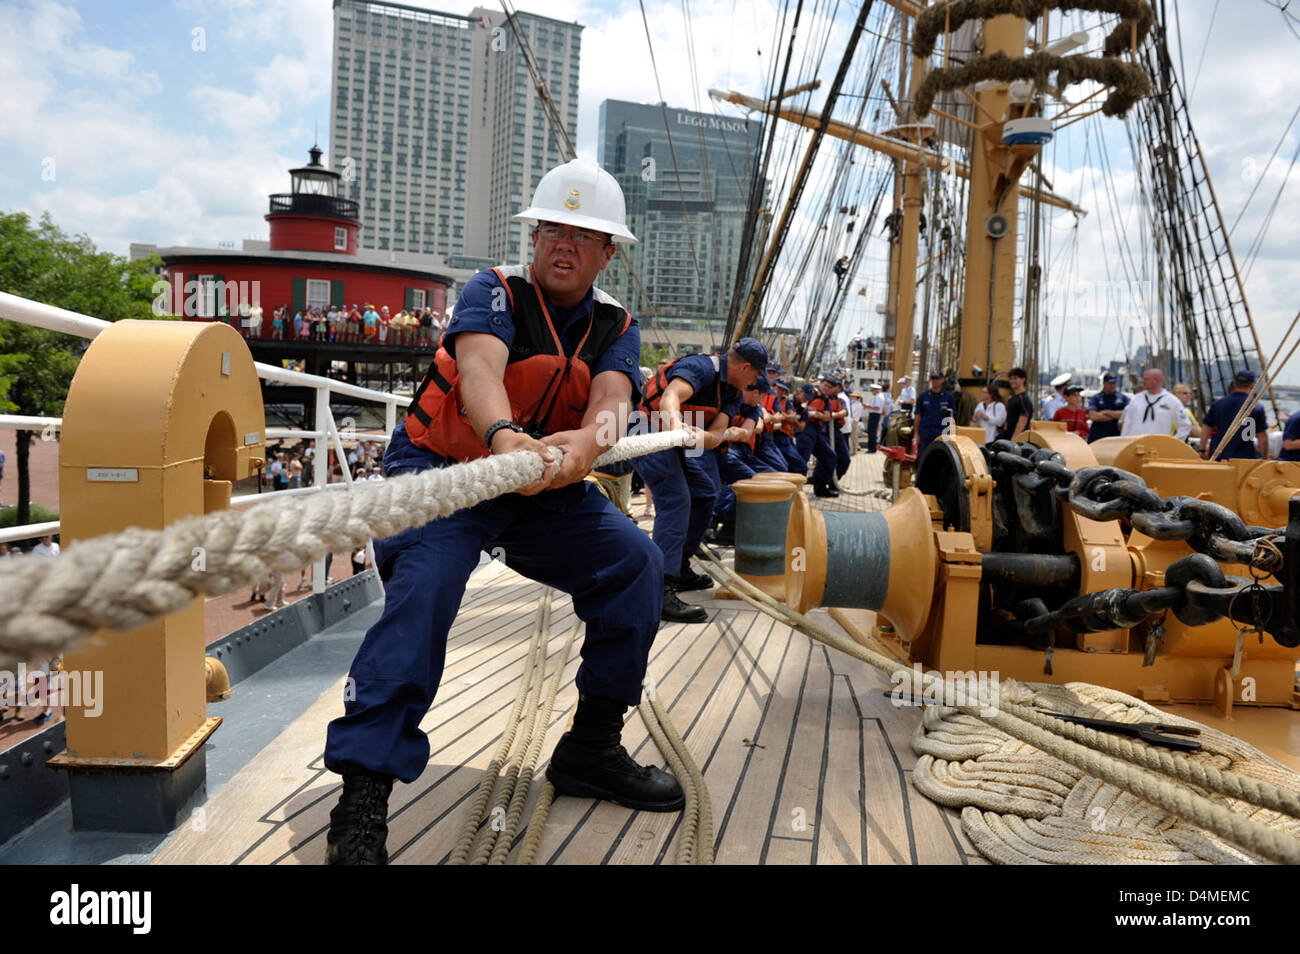 Eagle arrives in Baltimore for OpSail 2012 - Stock Image